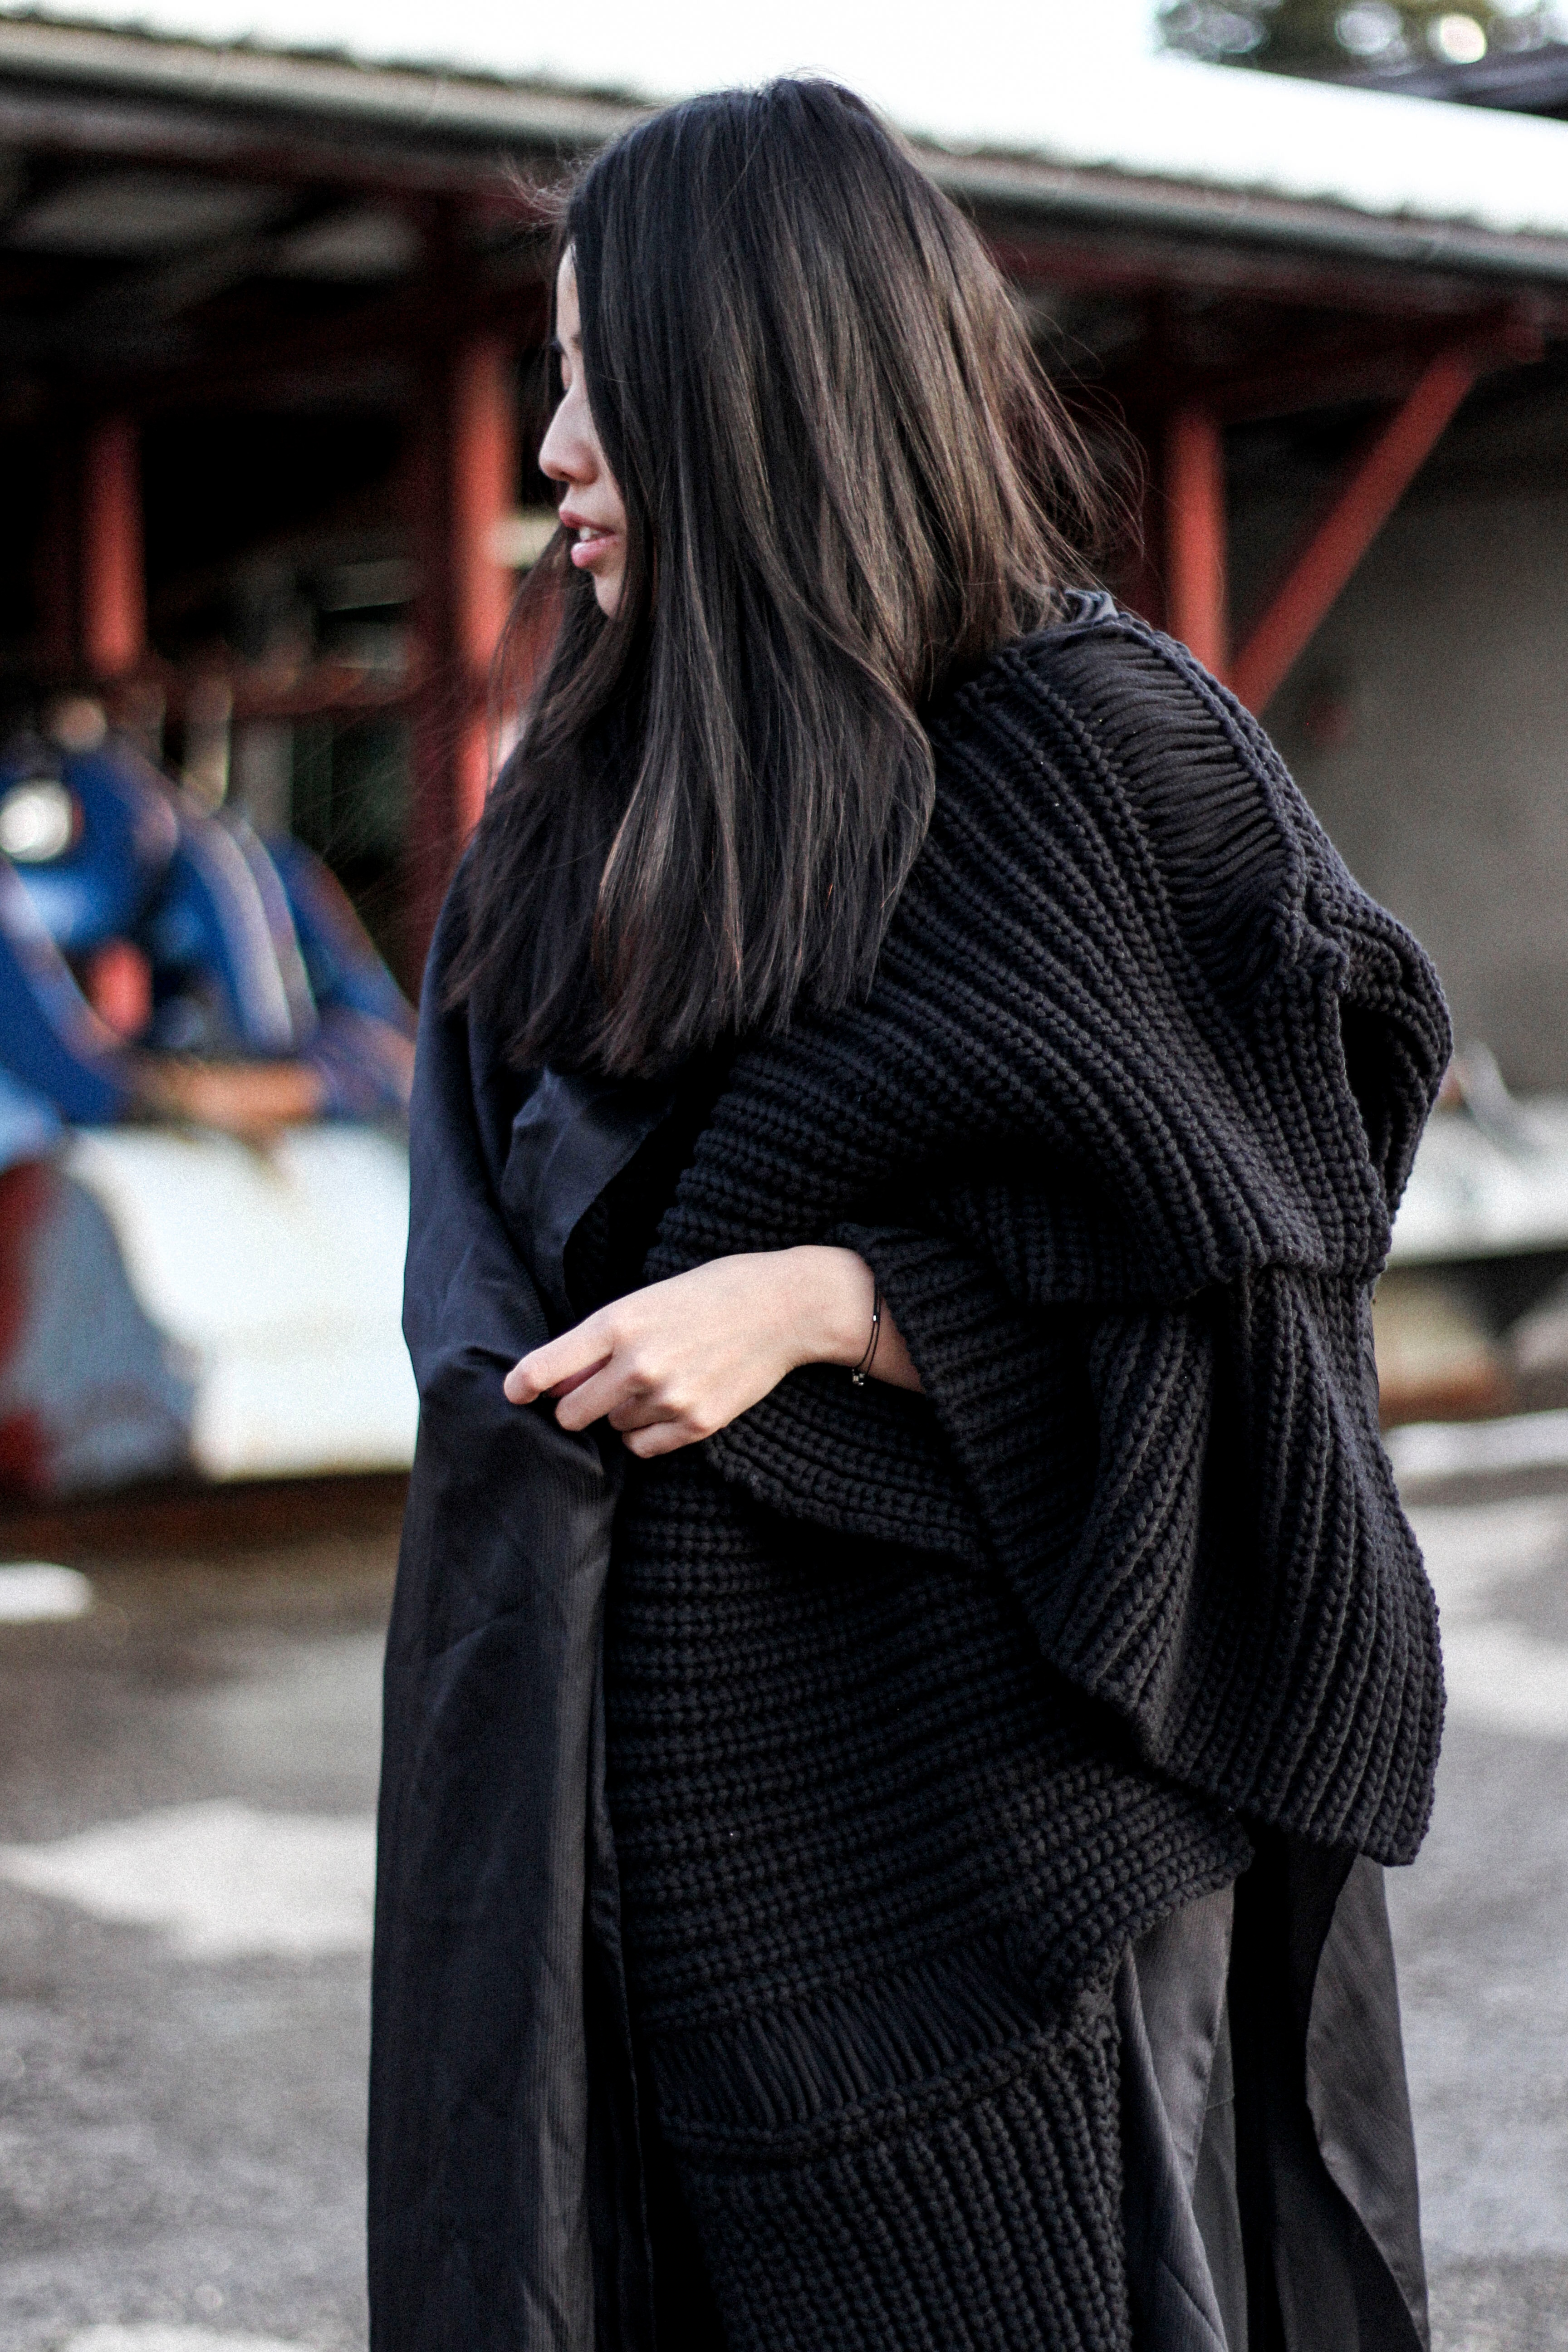 IHEARTALICE.DE – Fashion & Travel-Blog by Alice M. Huynh from Berlin/Germany: All black Everything Look wearing Alexander Wang Turtleneck Knit, Silk Scarf, Urban Outfitters Boots / OOTD